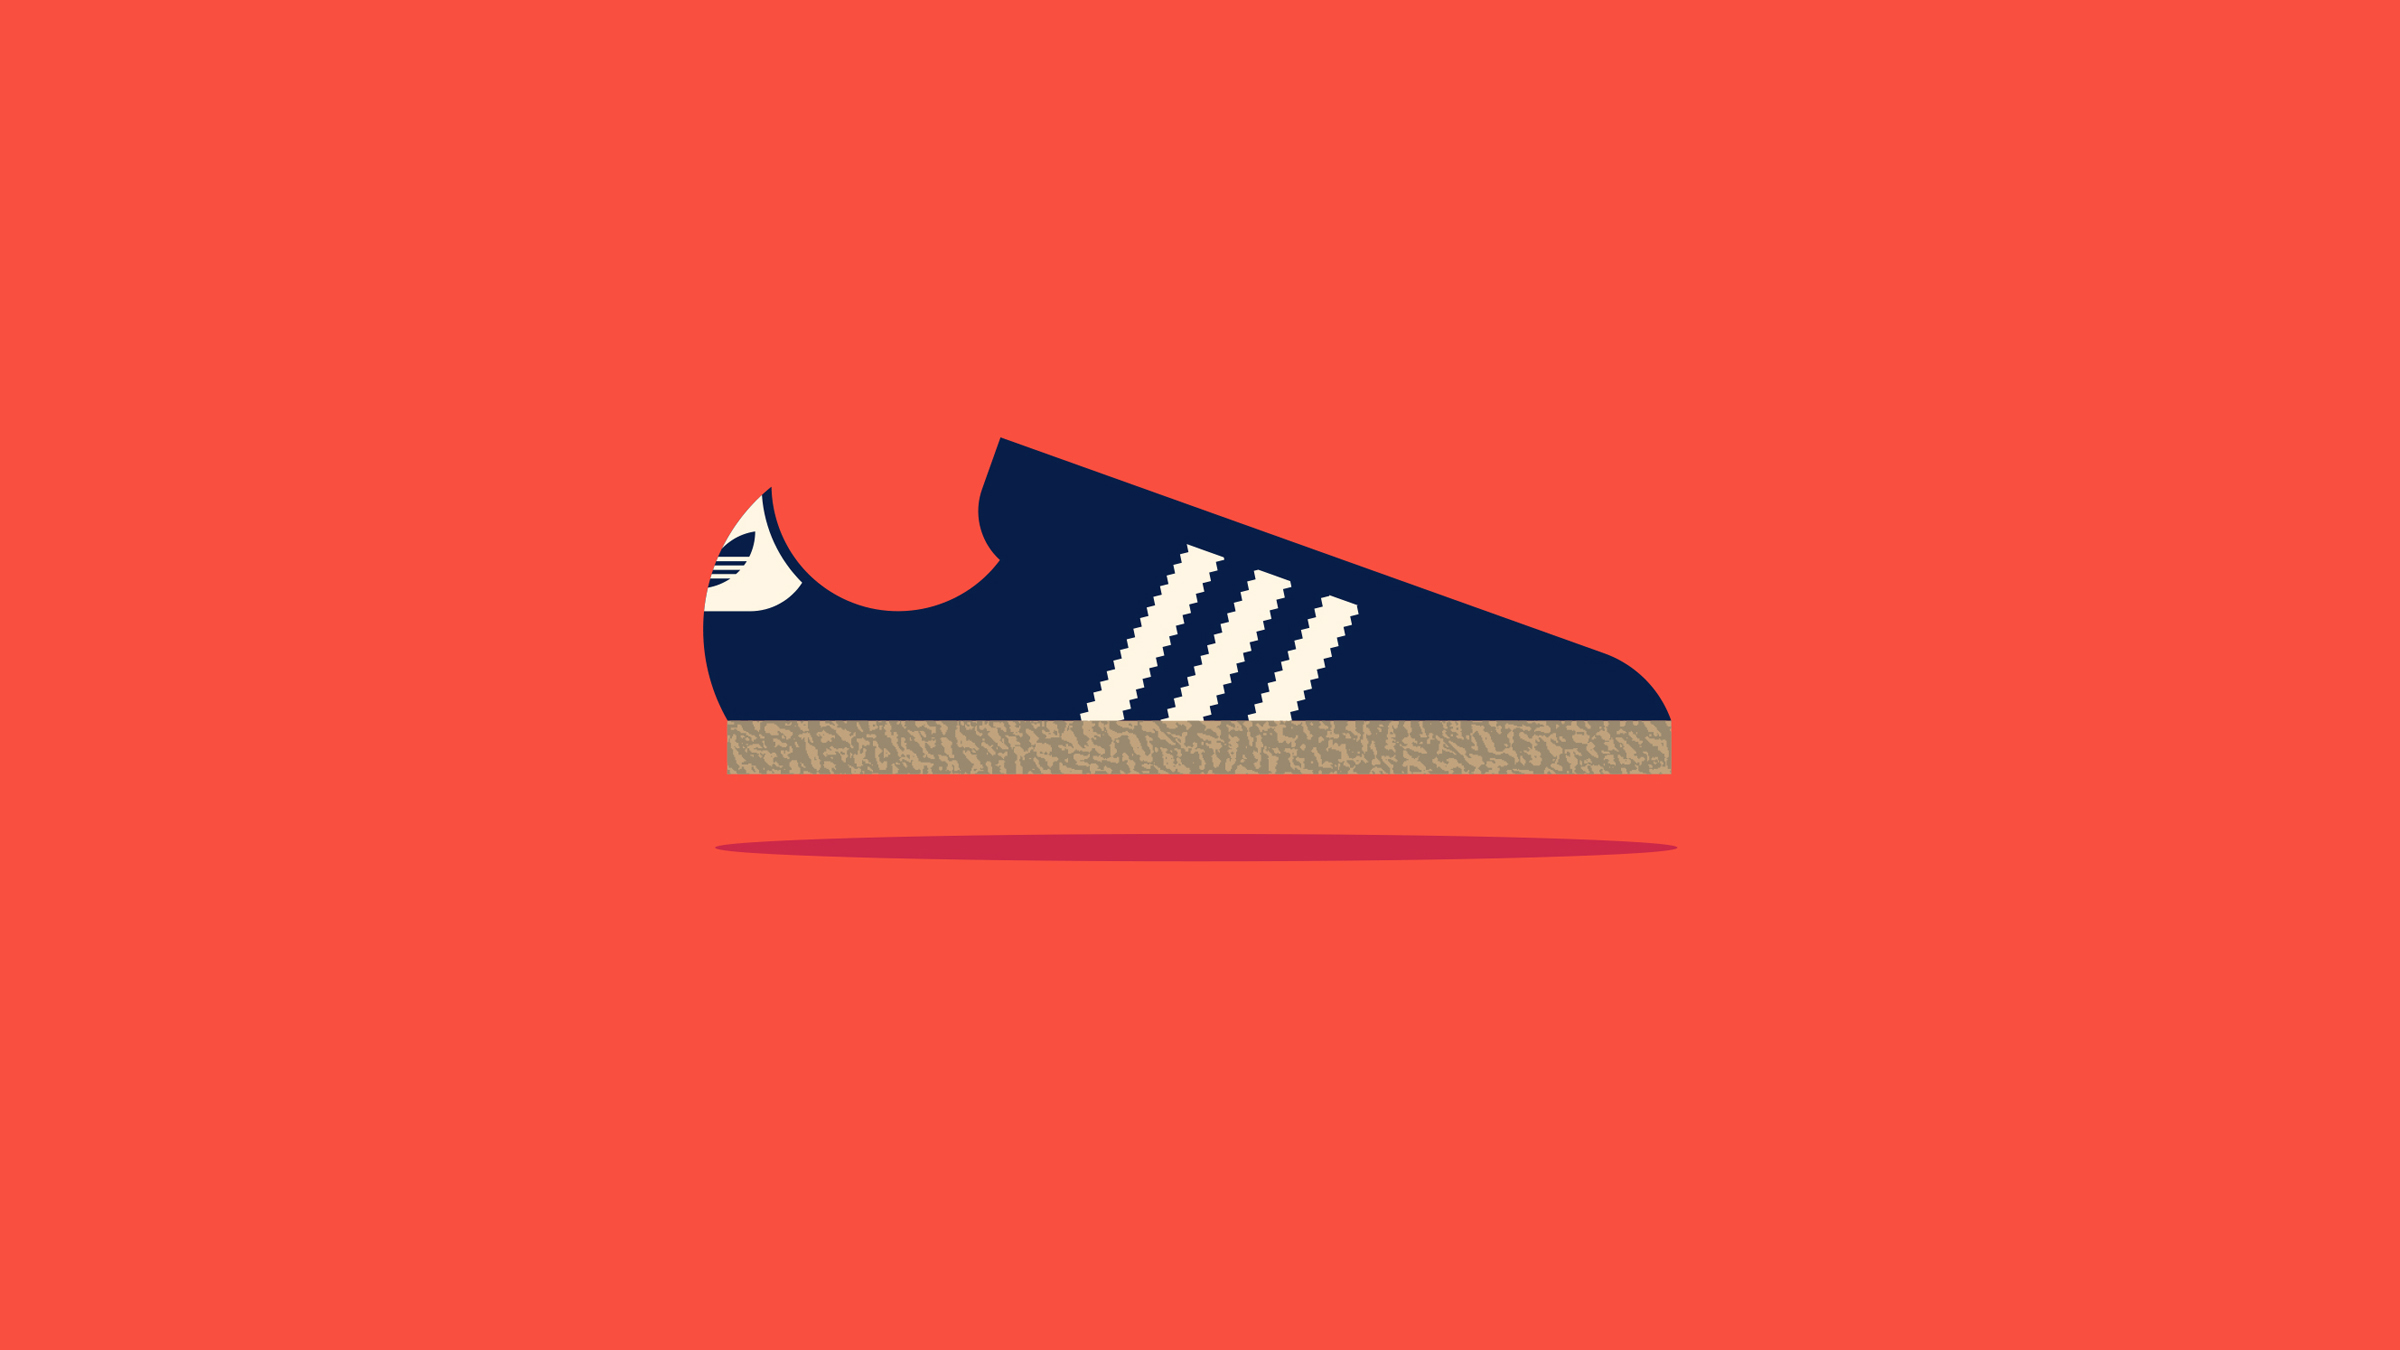 Adidas Samba Illustration